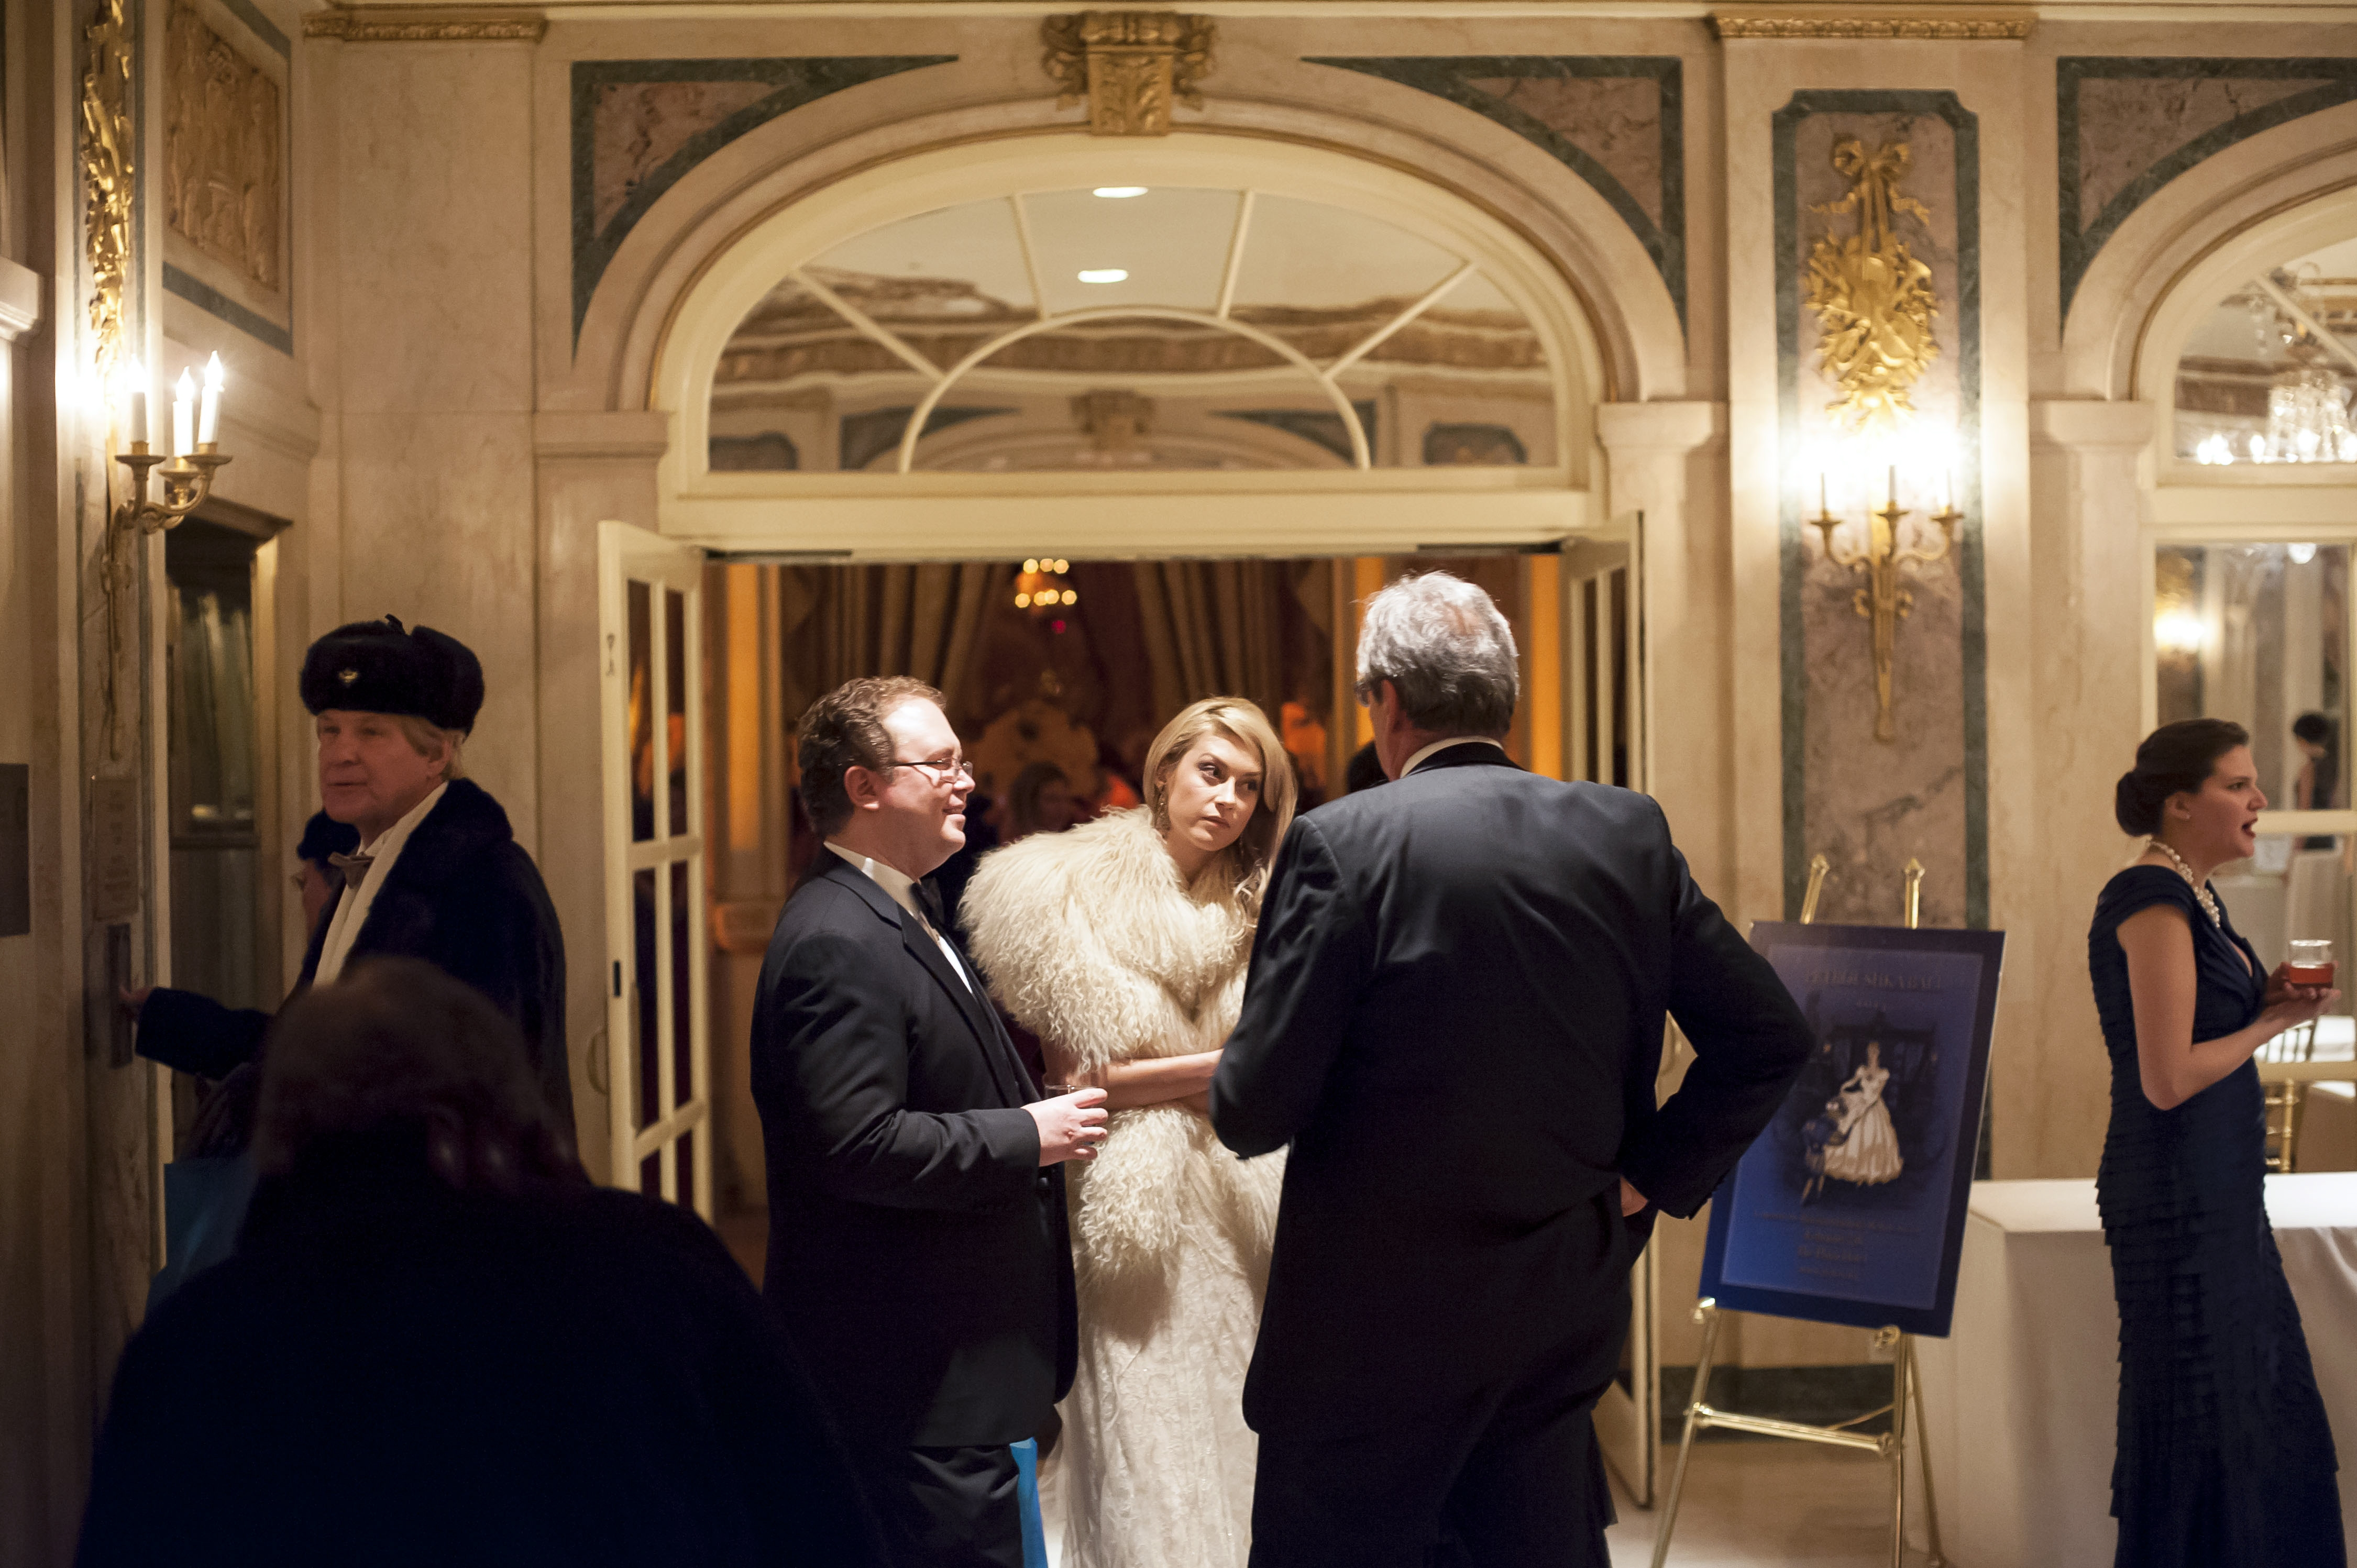 Attendees mingle during the Russian Children's Welfare Society's Petroushka Ball at the Plaza Hotel in New York on Feb. 7.